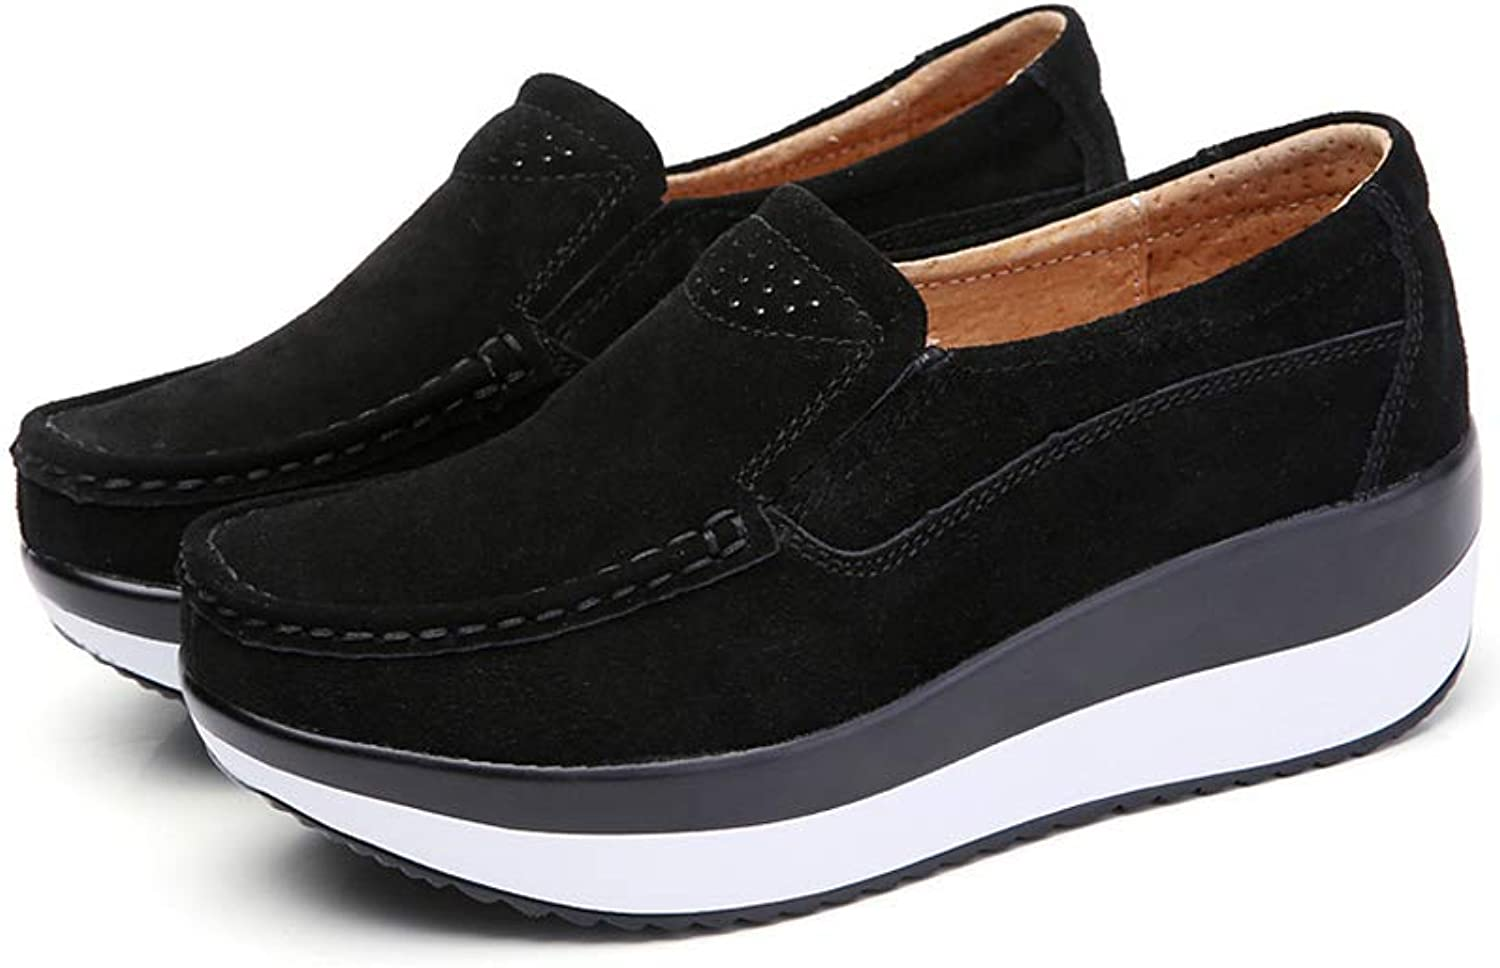 Duberess Women's Suede Leather Slip-on shoes Comfort Wedge Moccasin Loafers Casual Walking shoes Trainers Platform Sneaker